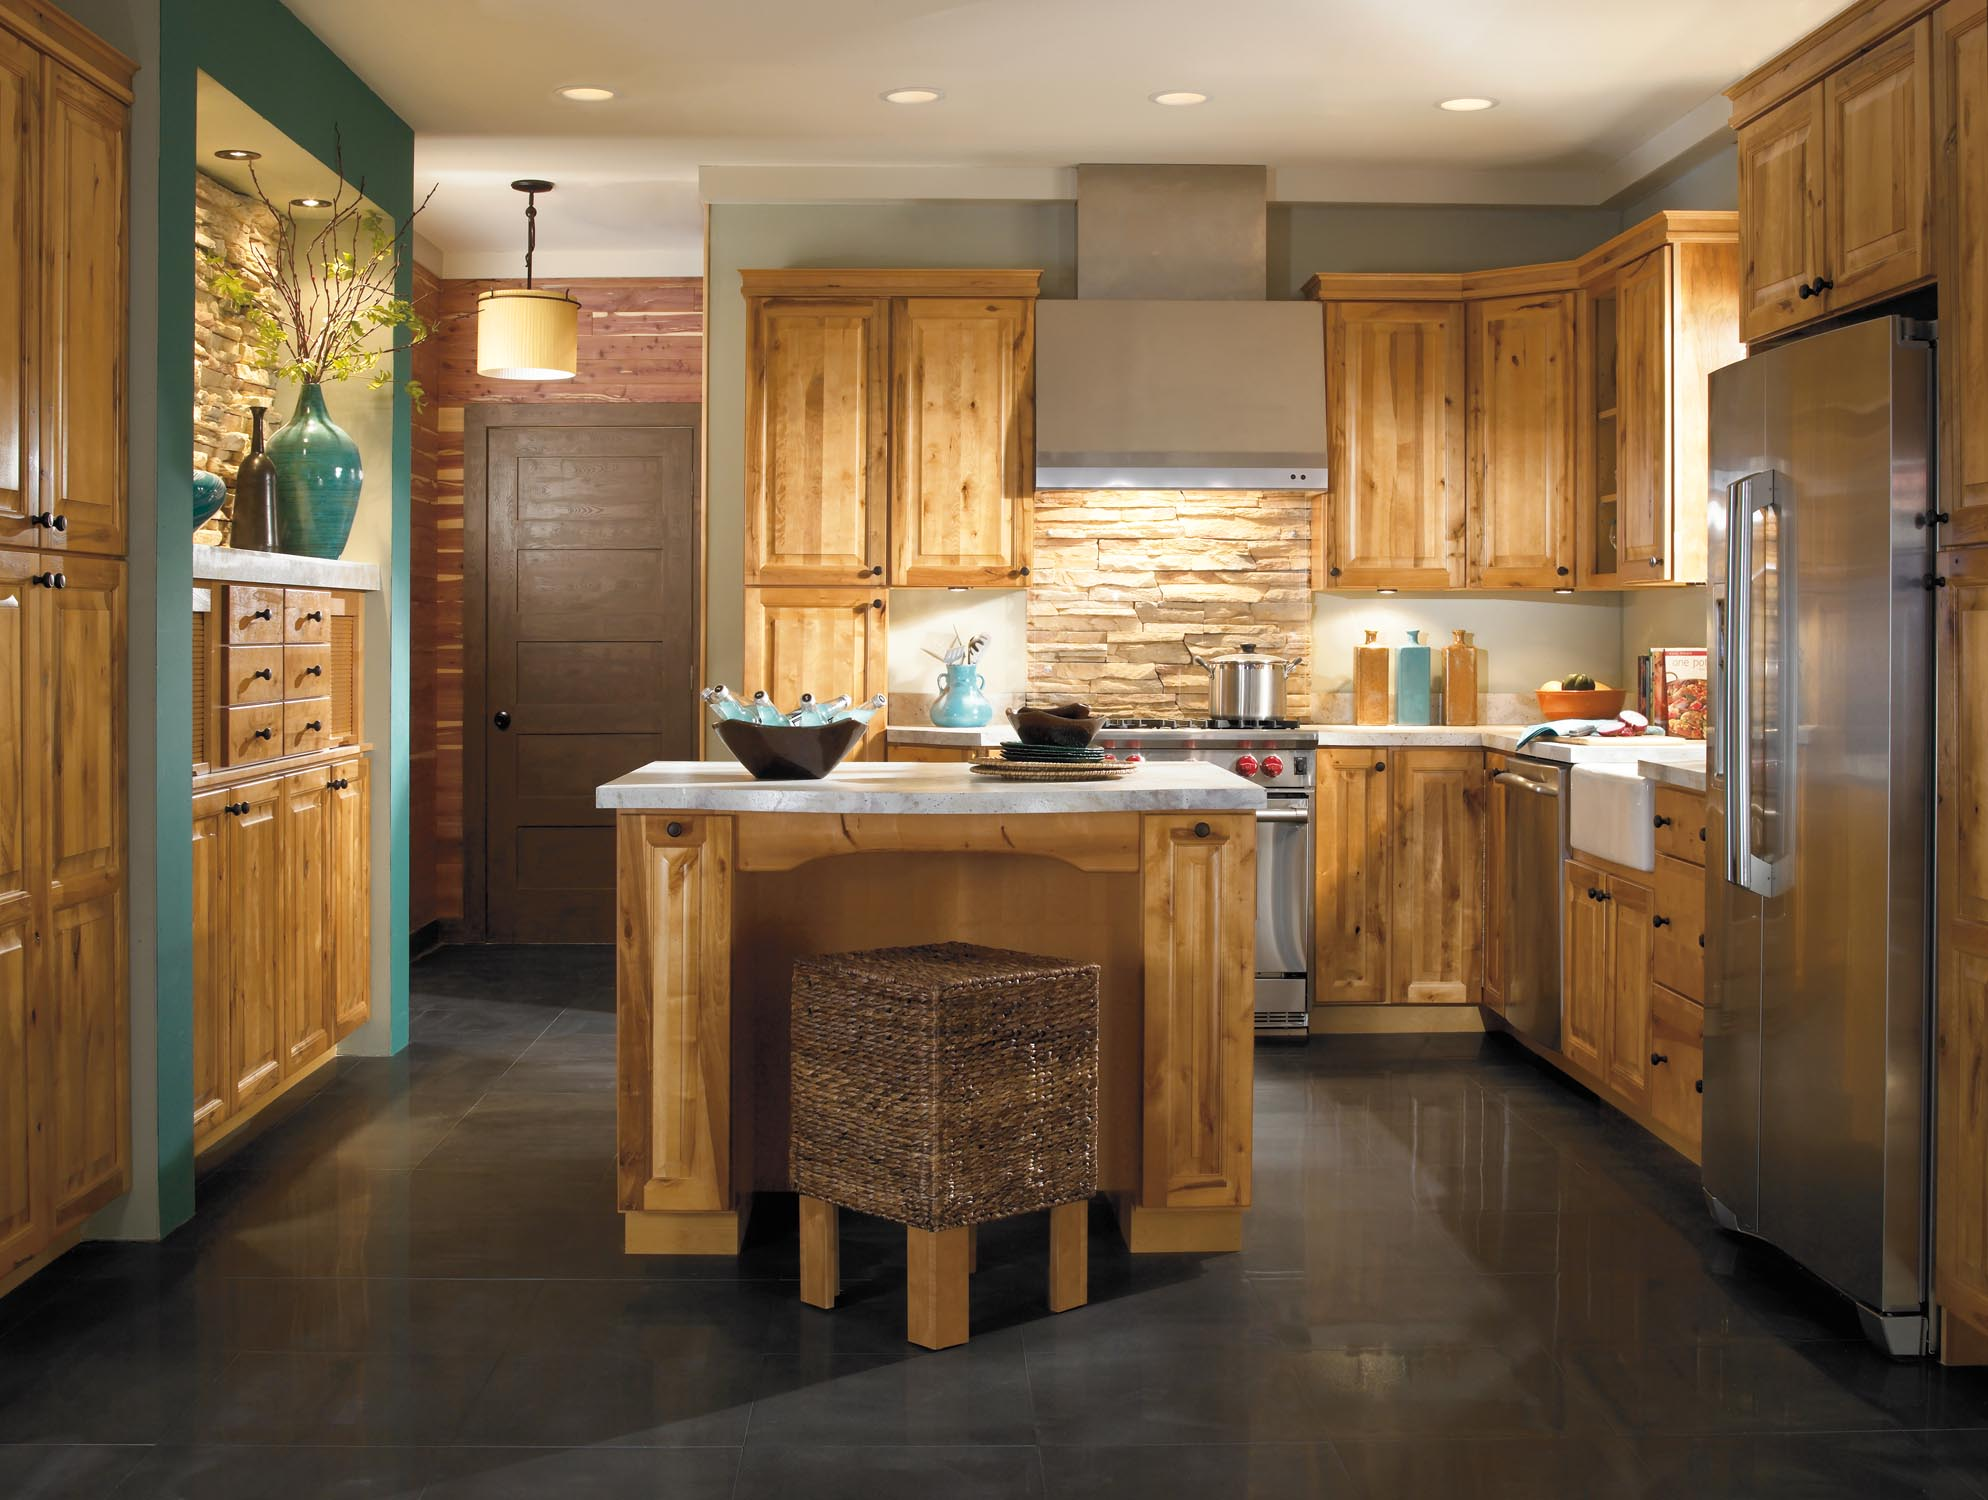 aristokraft kitchen cabinets wine themed accessories cabinetry gallery  and bath remodel